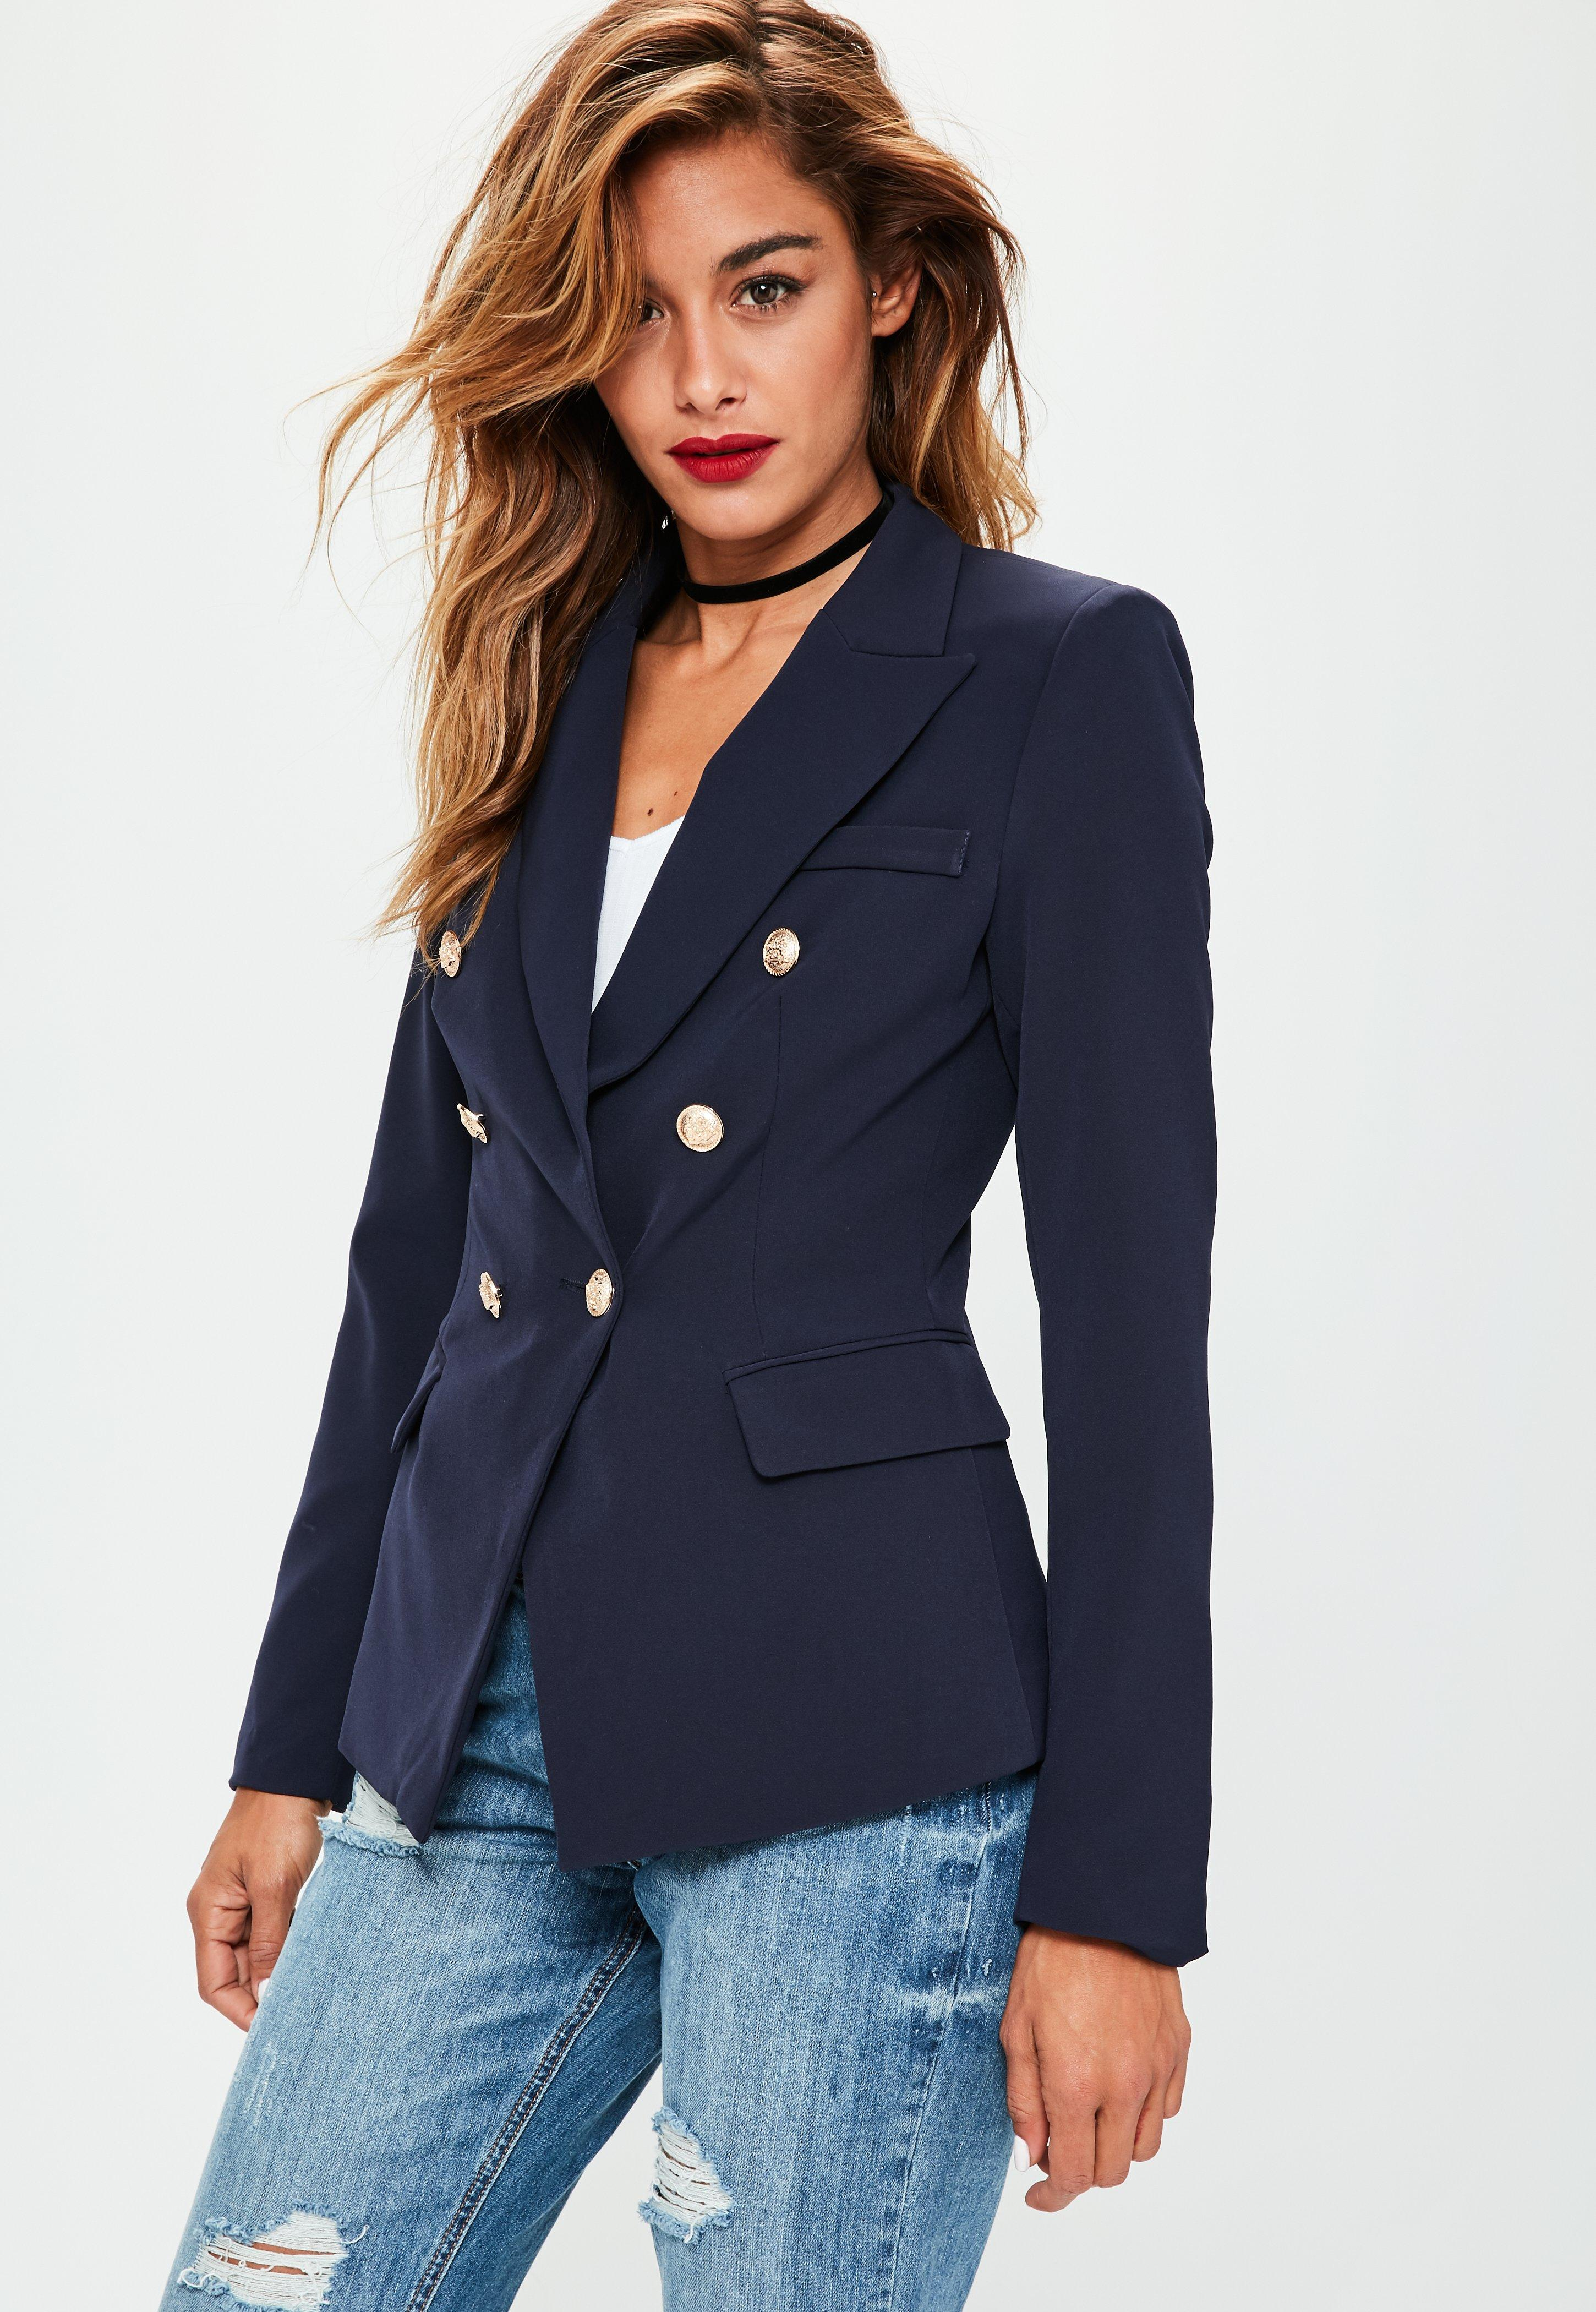 Sale Outlet Locations Missguided Mint Military Blazer Buy Cheap Visa Payment ZIPxo22